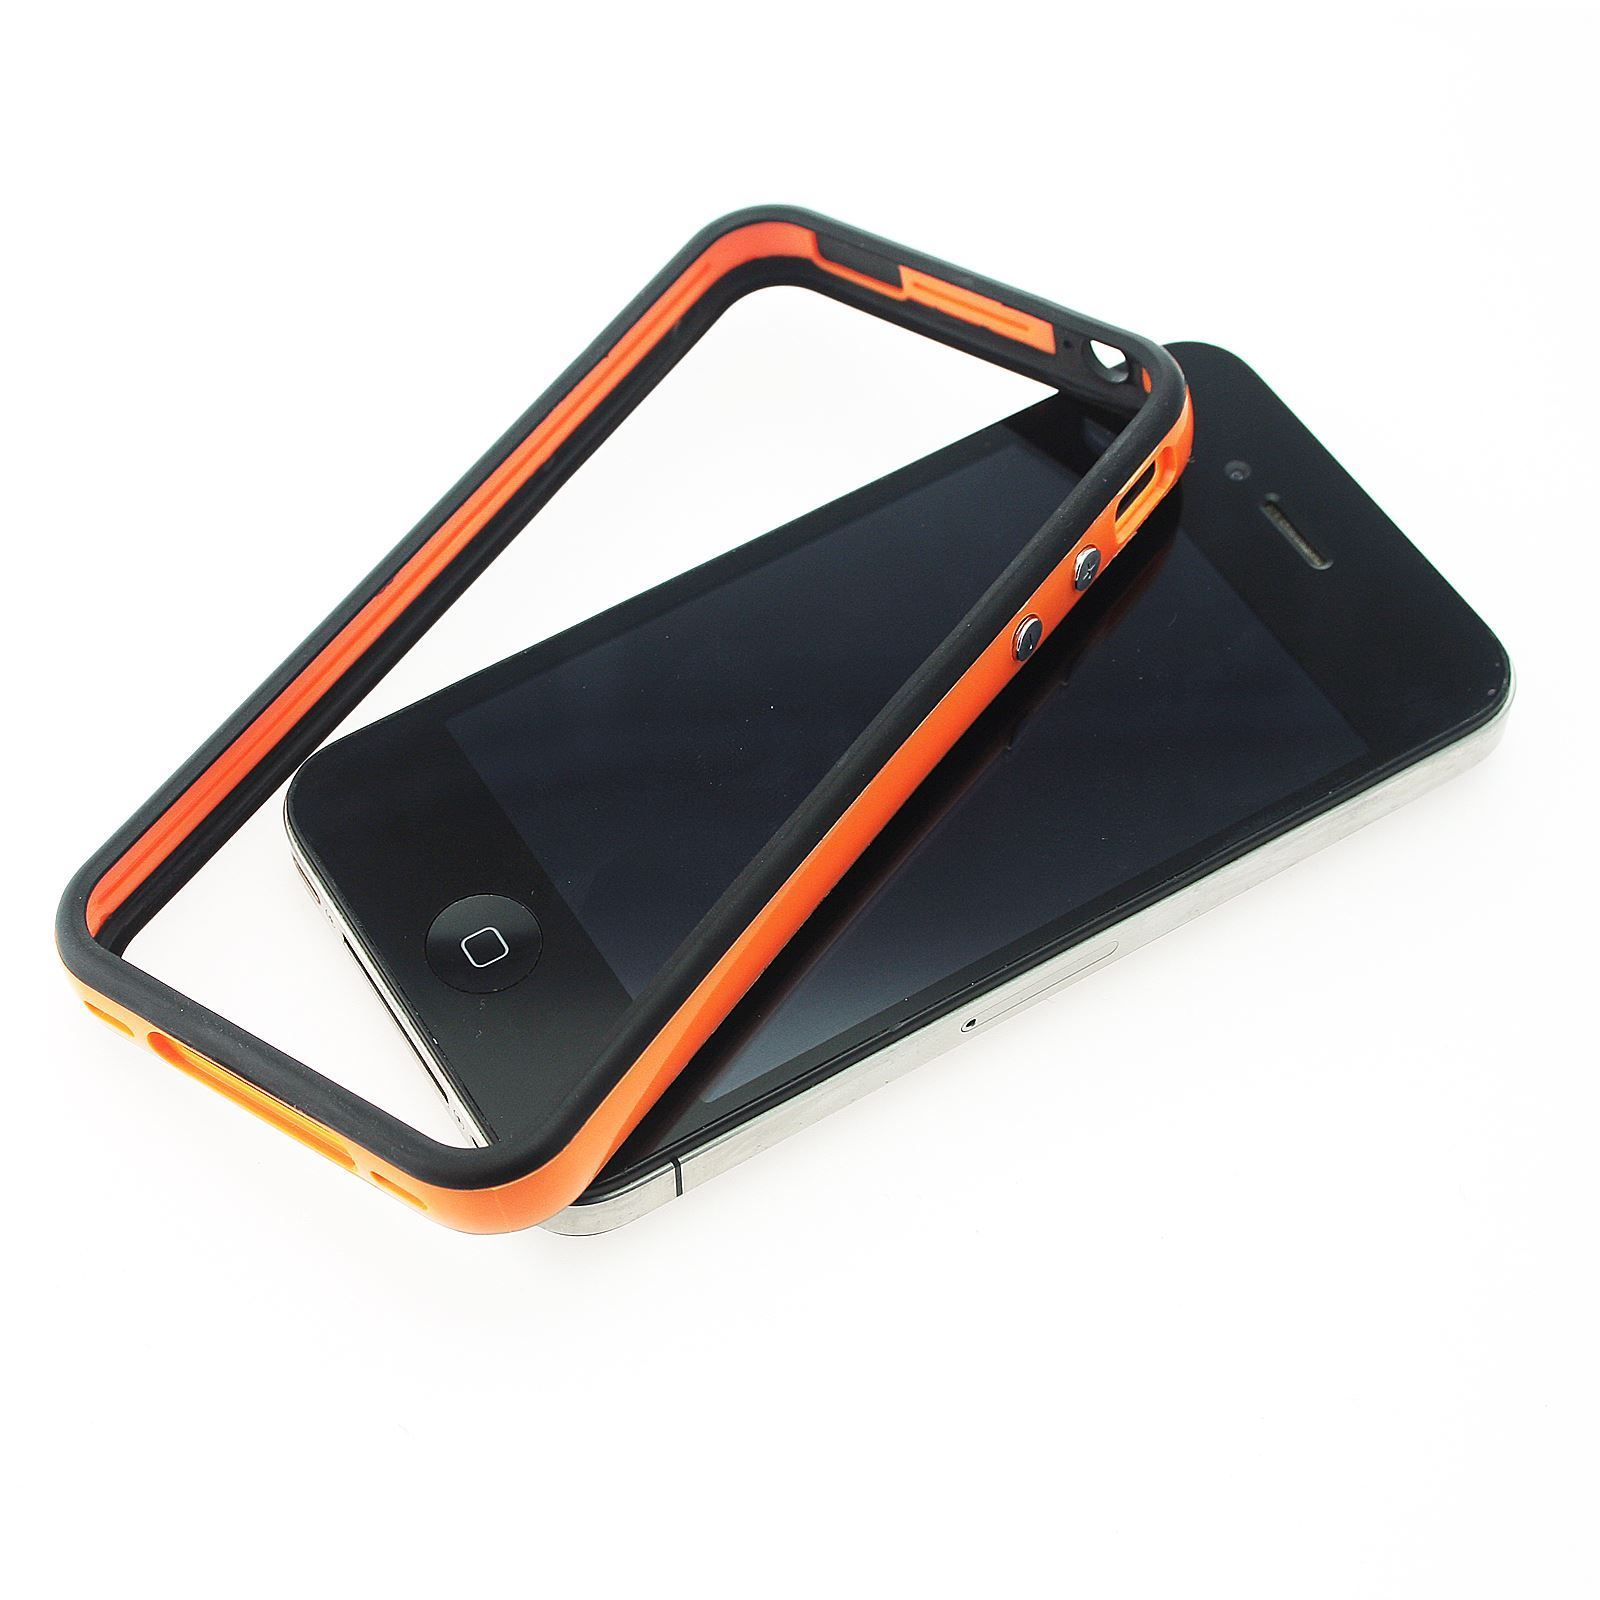 DUAL-COLOUR-BUMPER-FRAME-W-BUILT-IN-BUTTONS-SILICONE-CASE-COVER-FOR-IPHONE-4-4S miniatuur 16